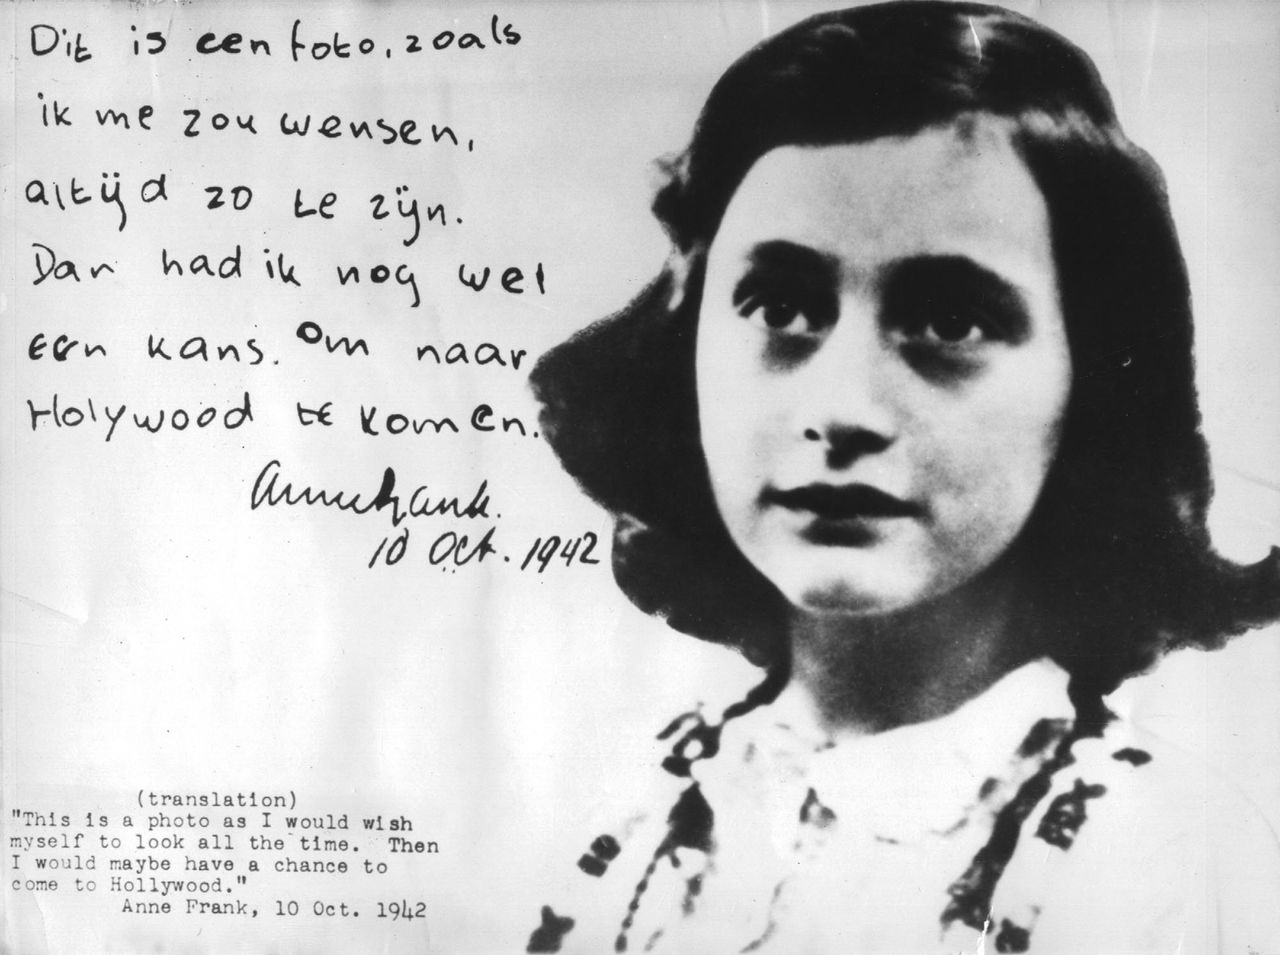 Anne Frank, the Jewish girl who wrote her world-famous journal while living in hiding in Amsterdam during World War II, is seen in this 1942 photo.